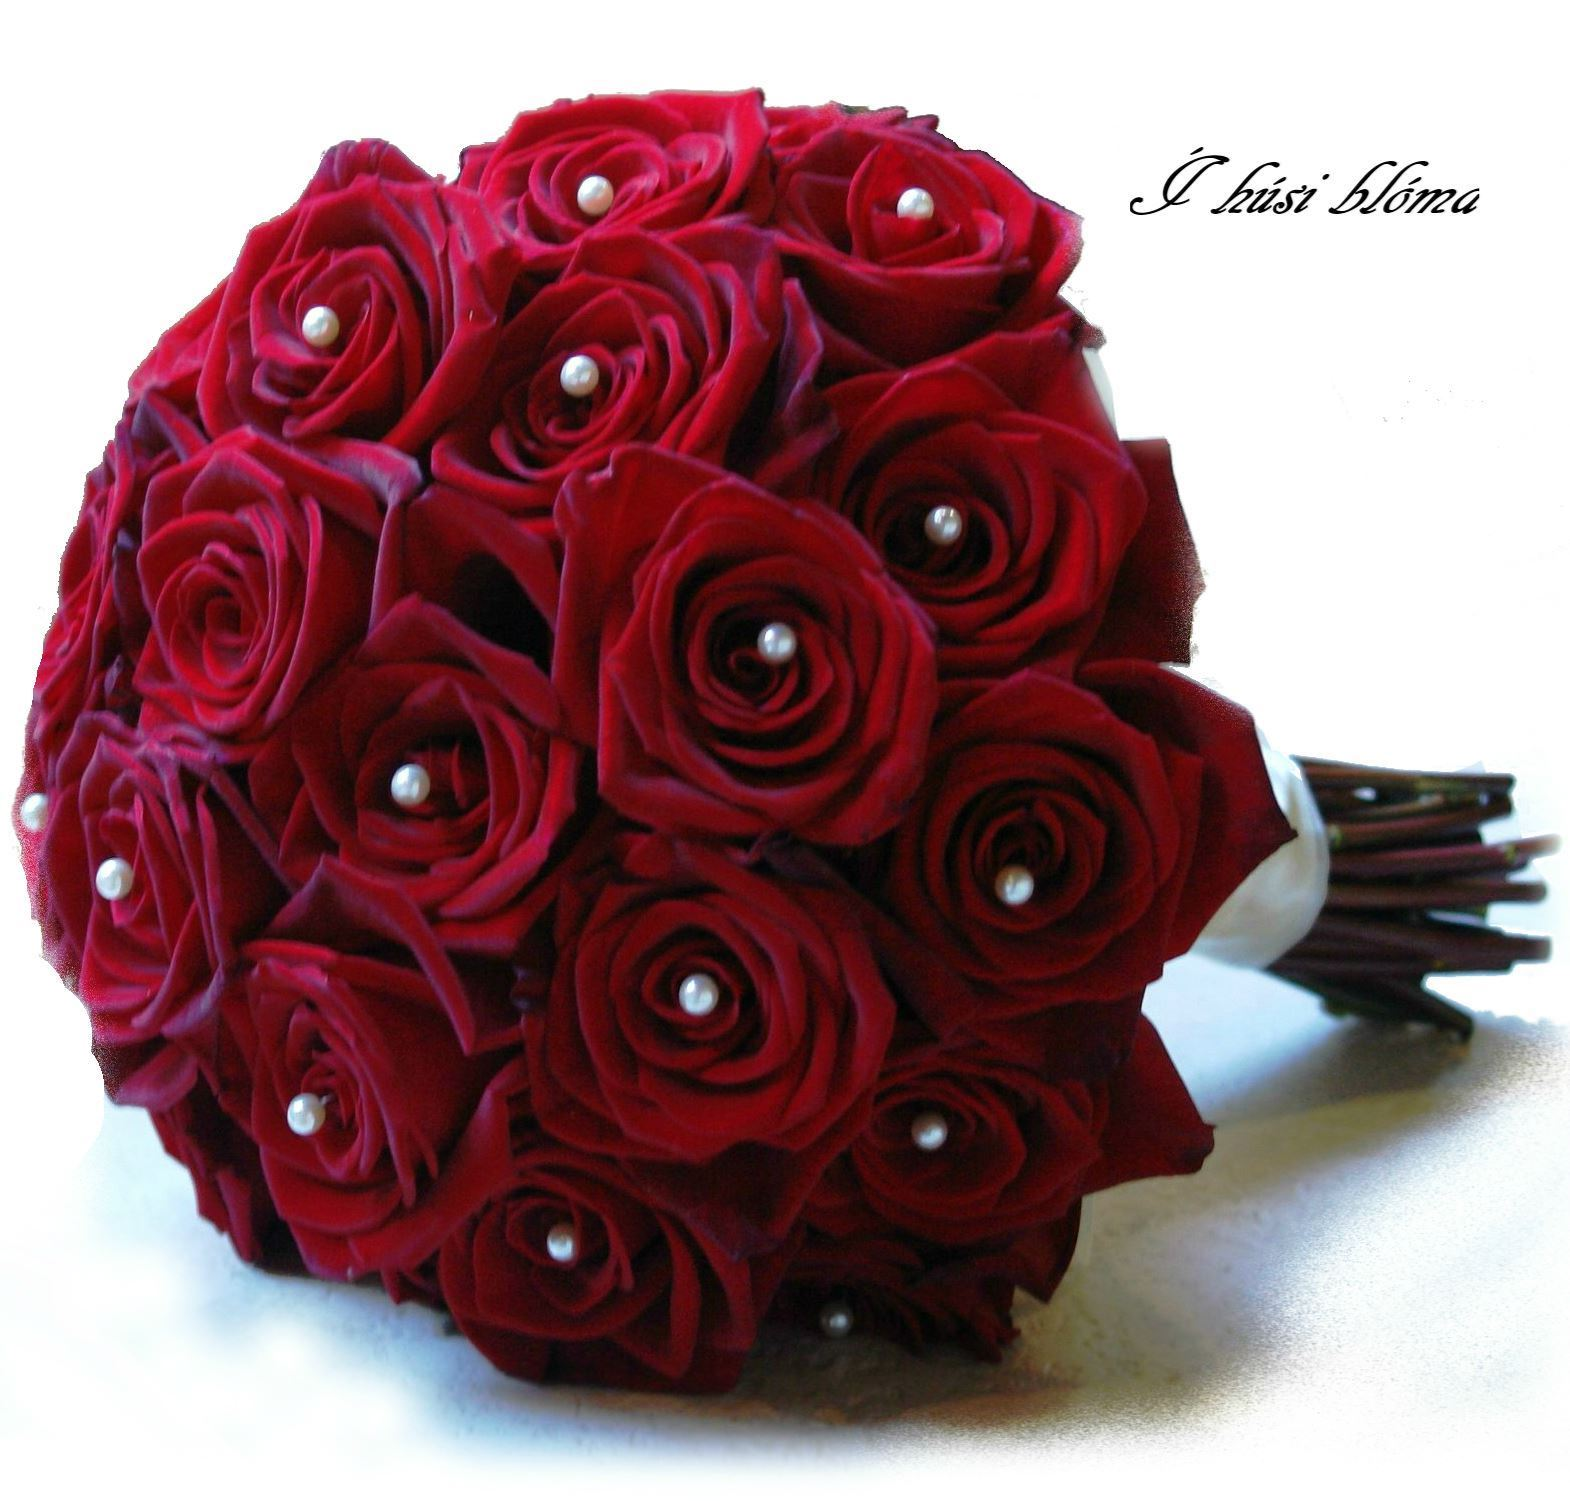 Red Roses Wedding Bouquets.Classic Round Wedding Bouquet With Roses In Desired Color And Pearls